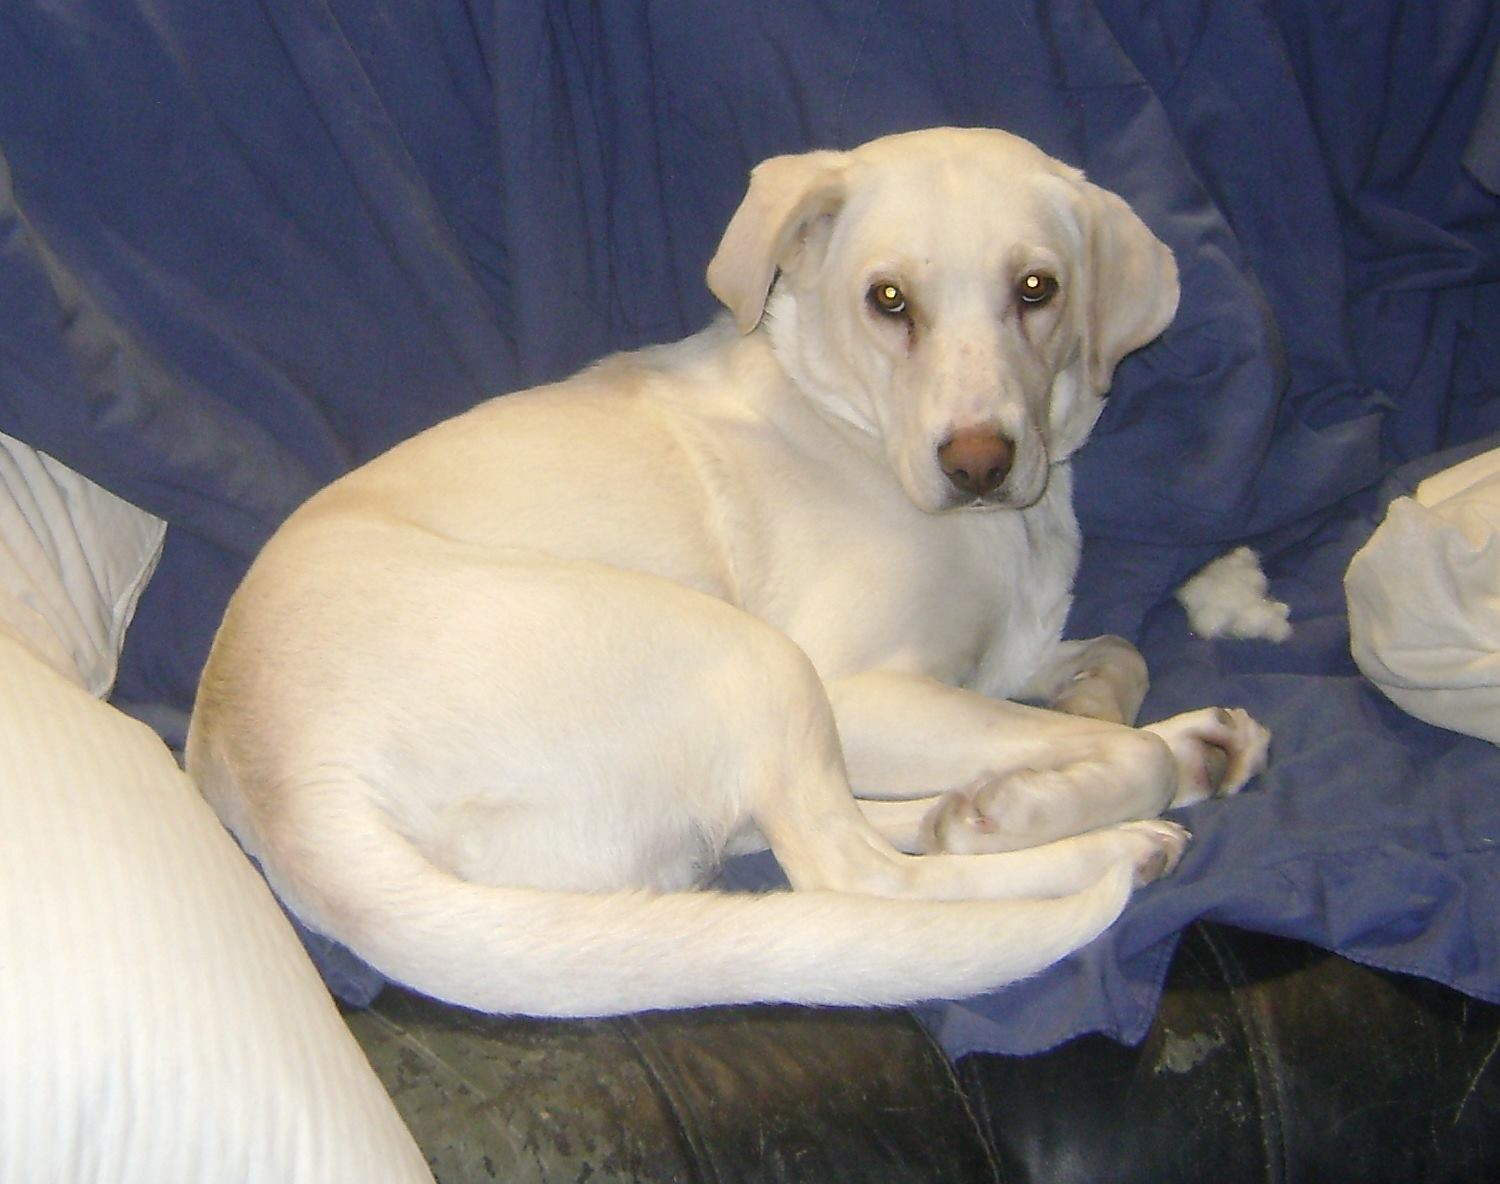 Huntress is a female, 3-year-old lab.